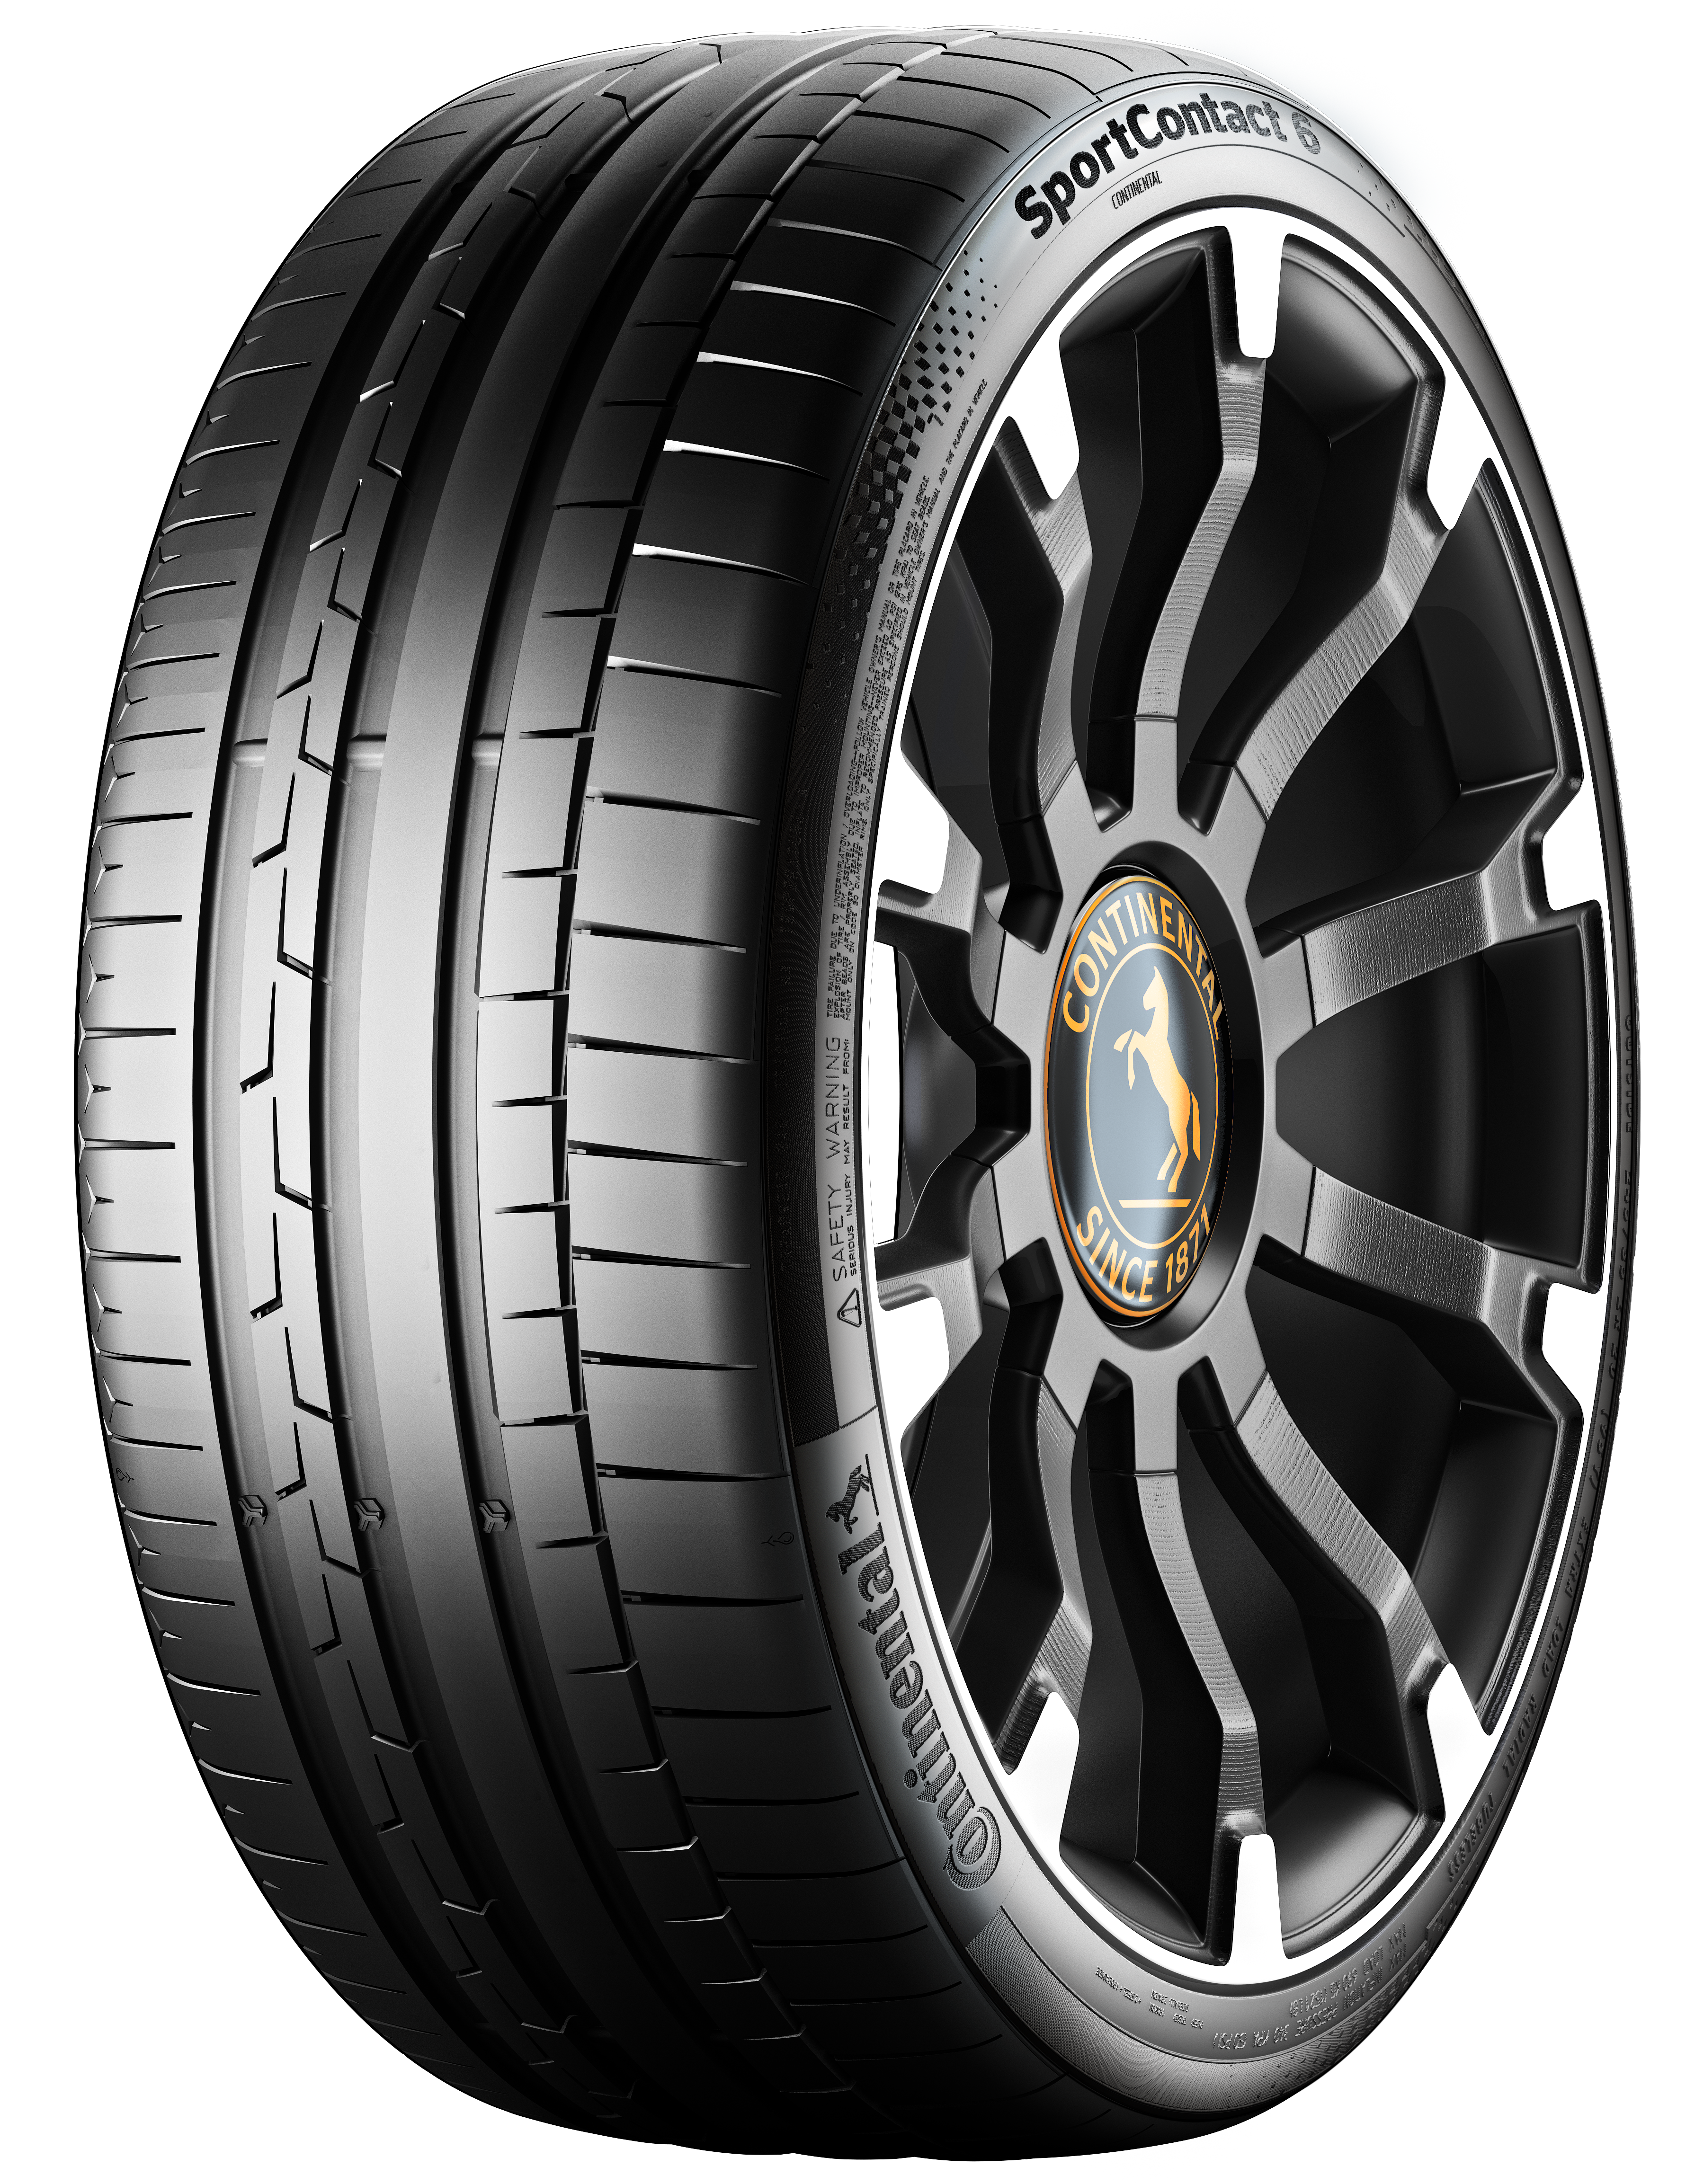 CONTINENTAL SPORTCONTACT 6 235/50 R 19 99Y